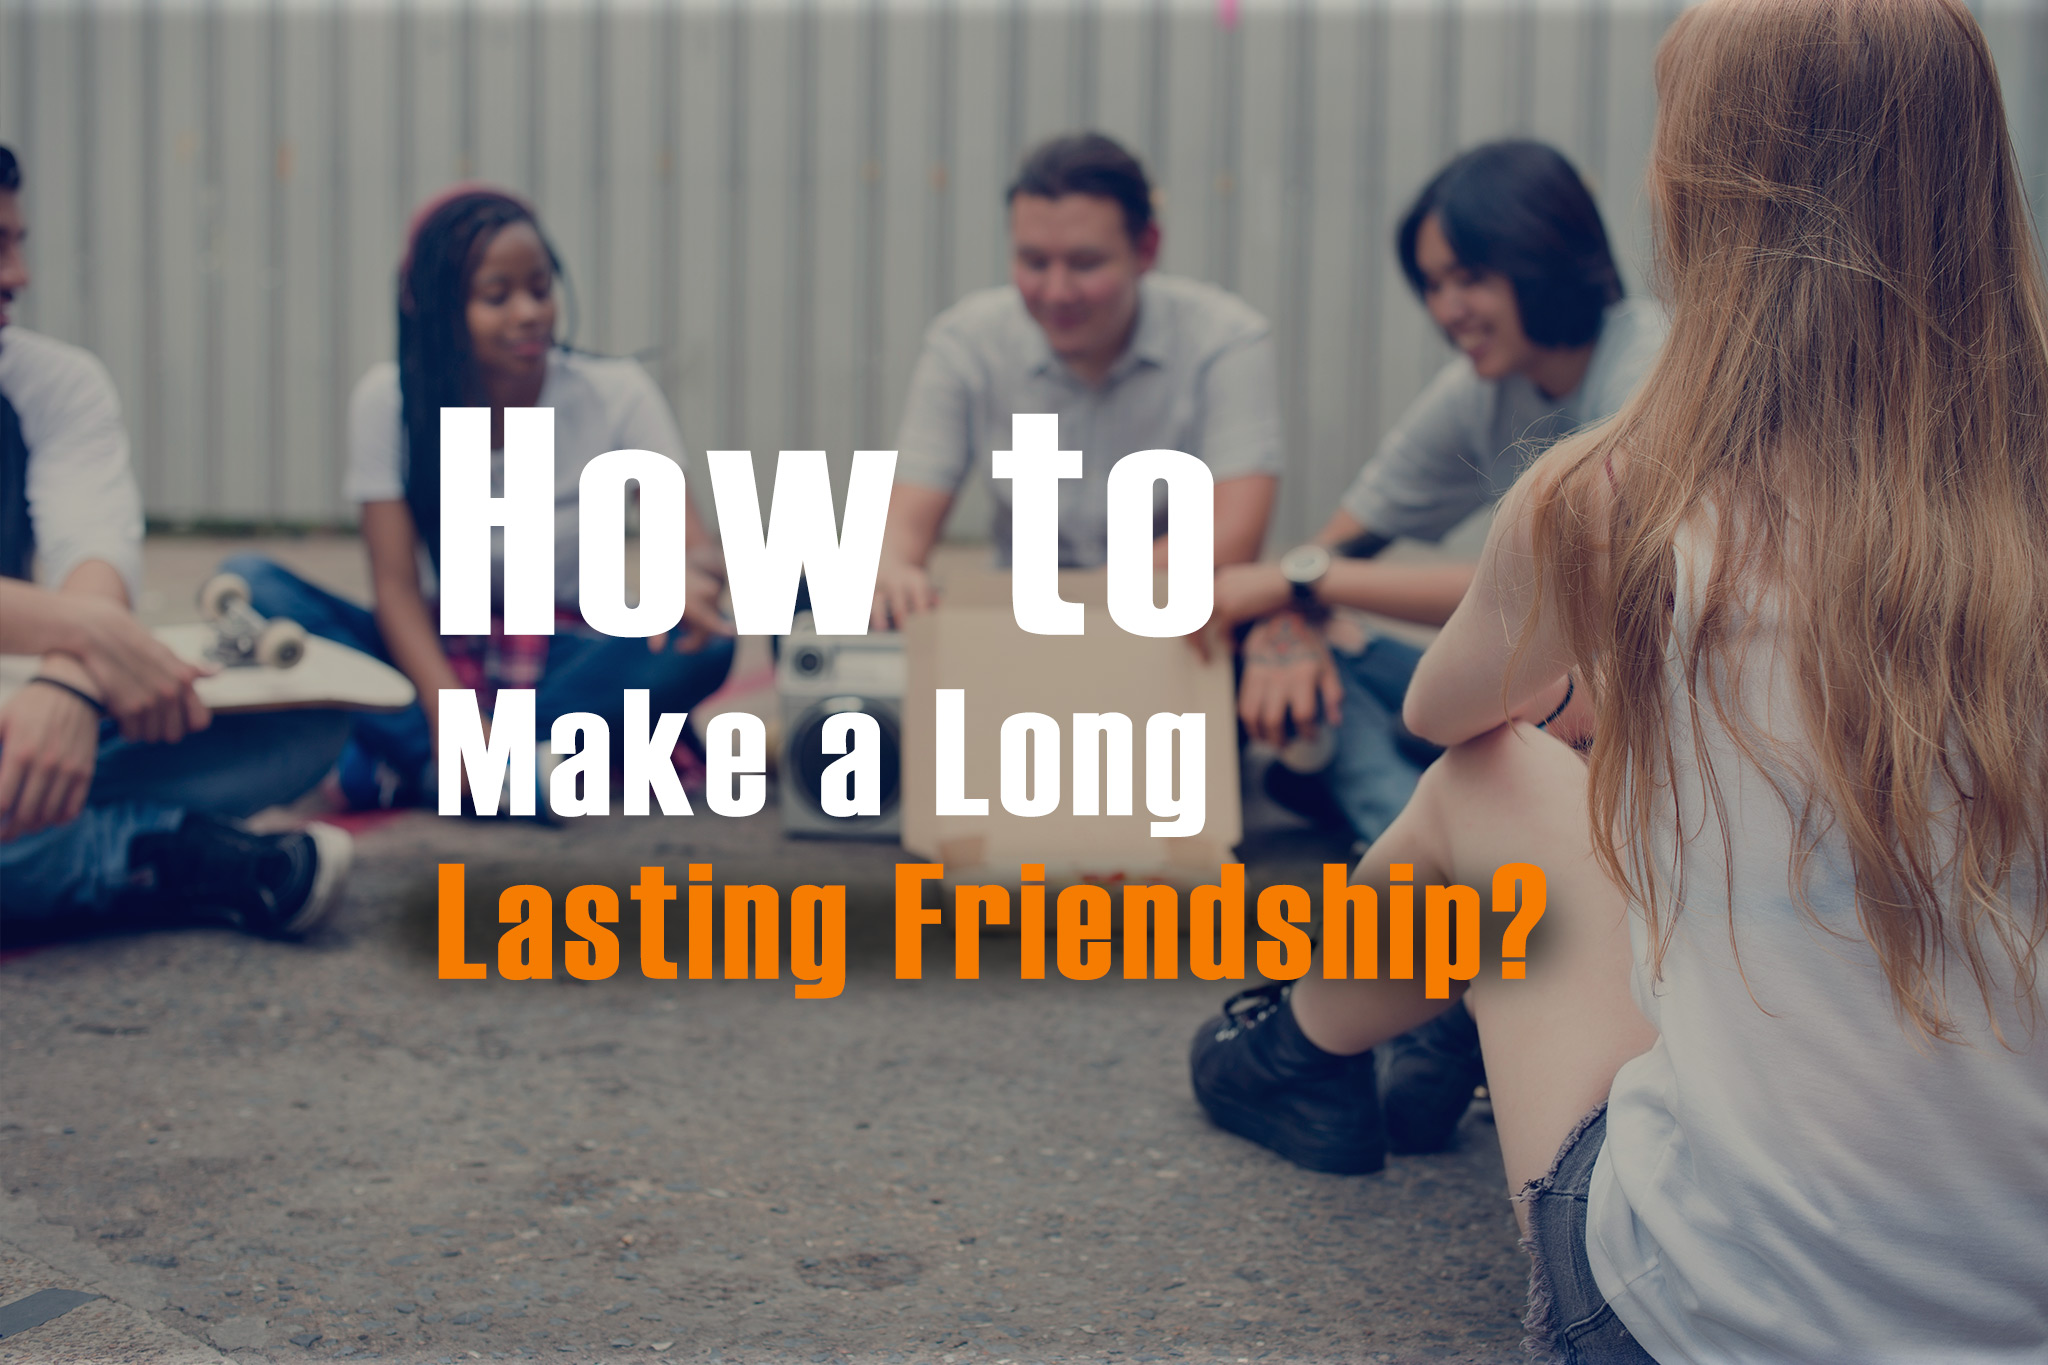 How to Make a Long Lasting Friendship?